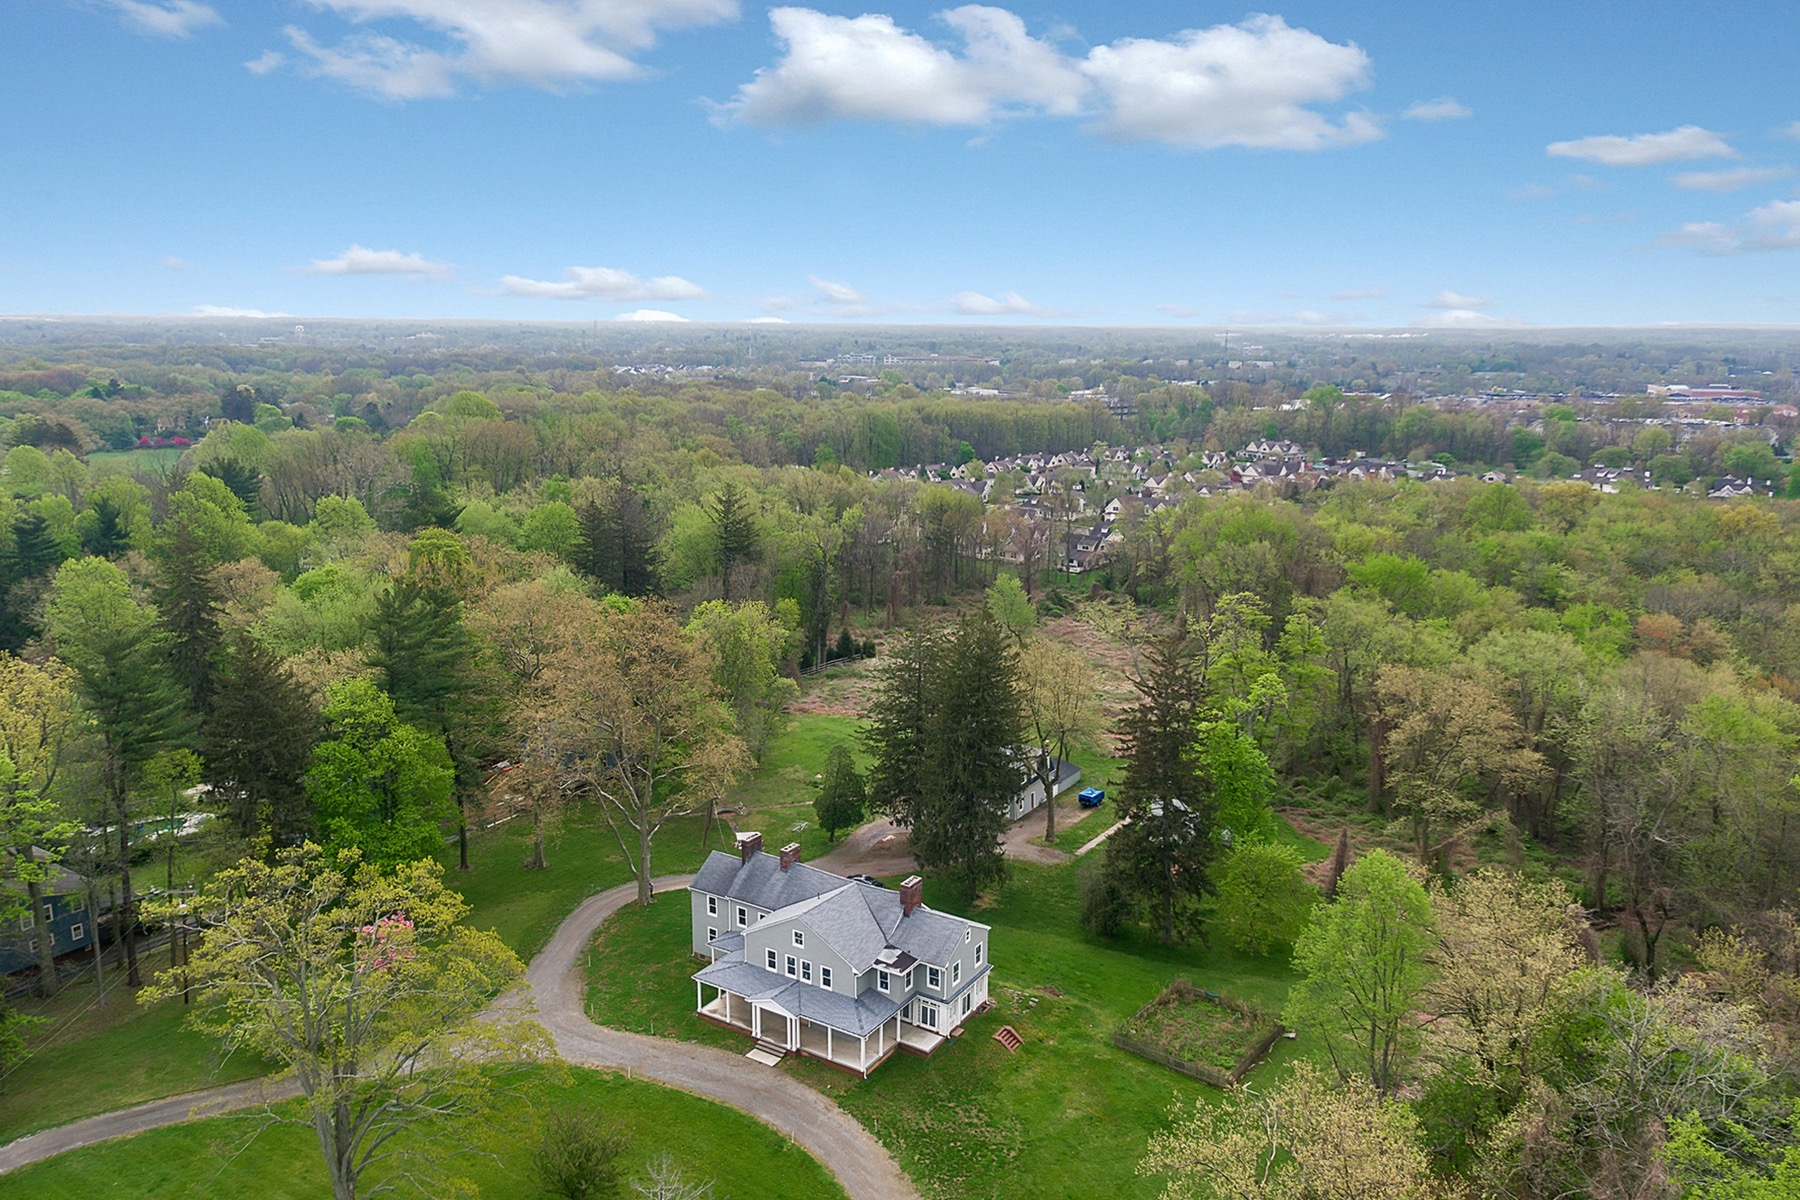 Single Family Home for Sale at Lone Oak Estate 489 Sycamore Ave. Shrewsbury, 07702 United States